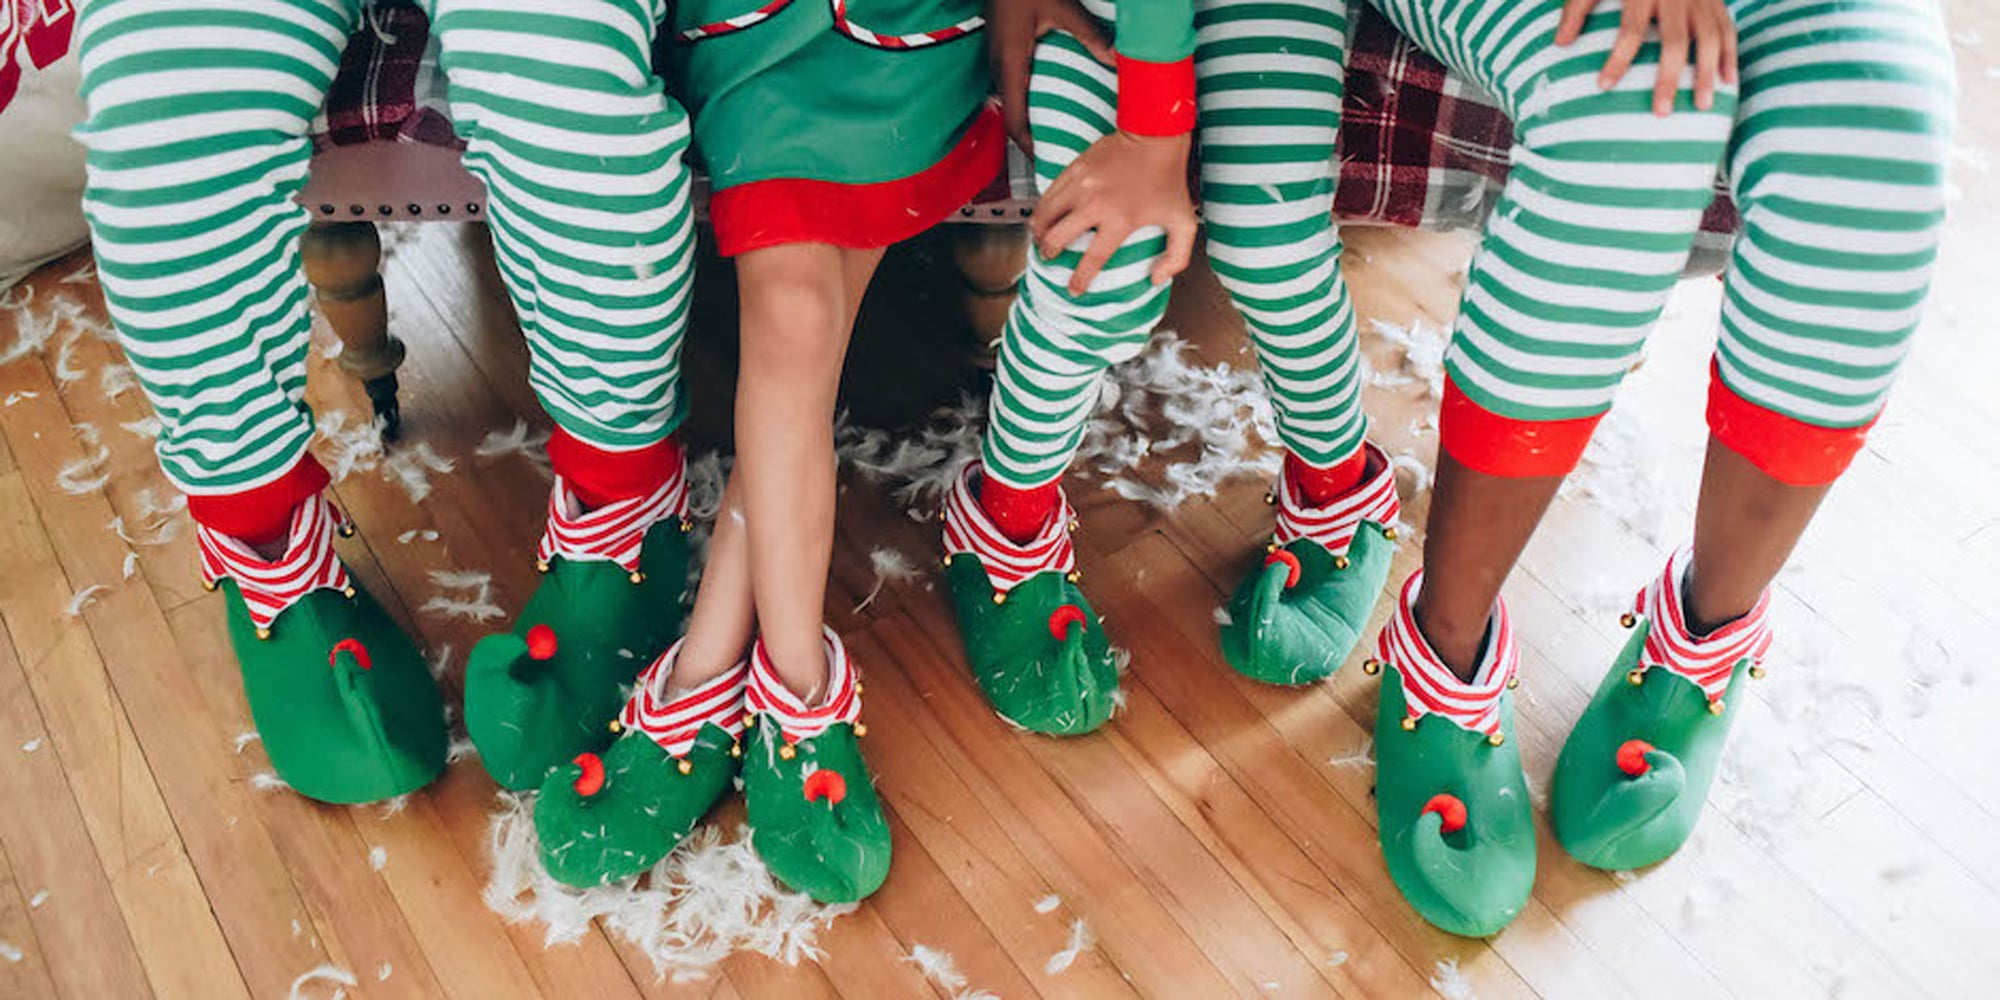 I Discovered a Clever Hack to Wear Matching Family Holiday Pajamas Every Year Without Overspending